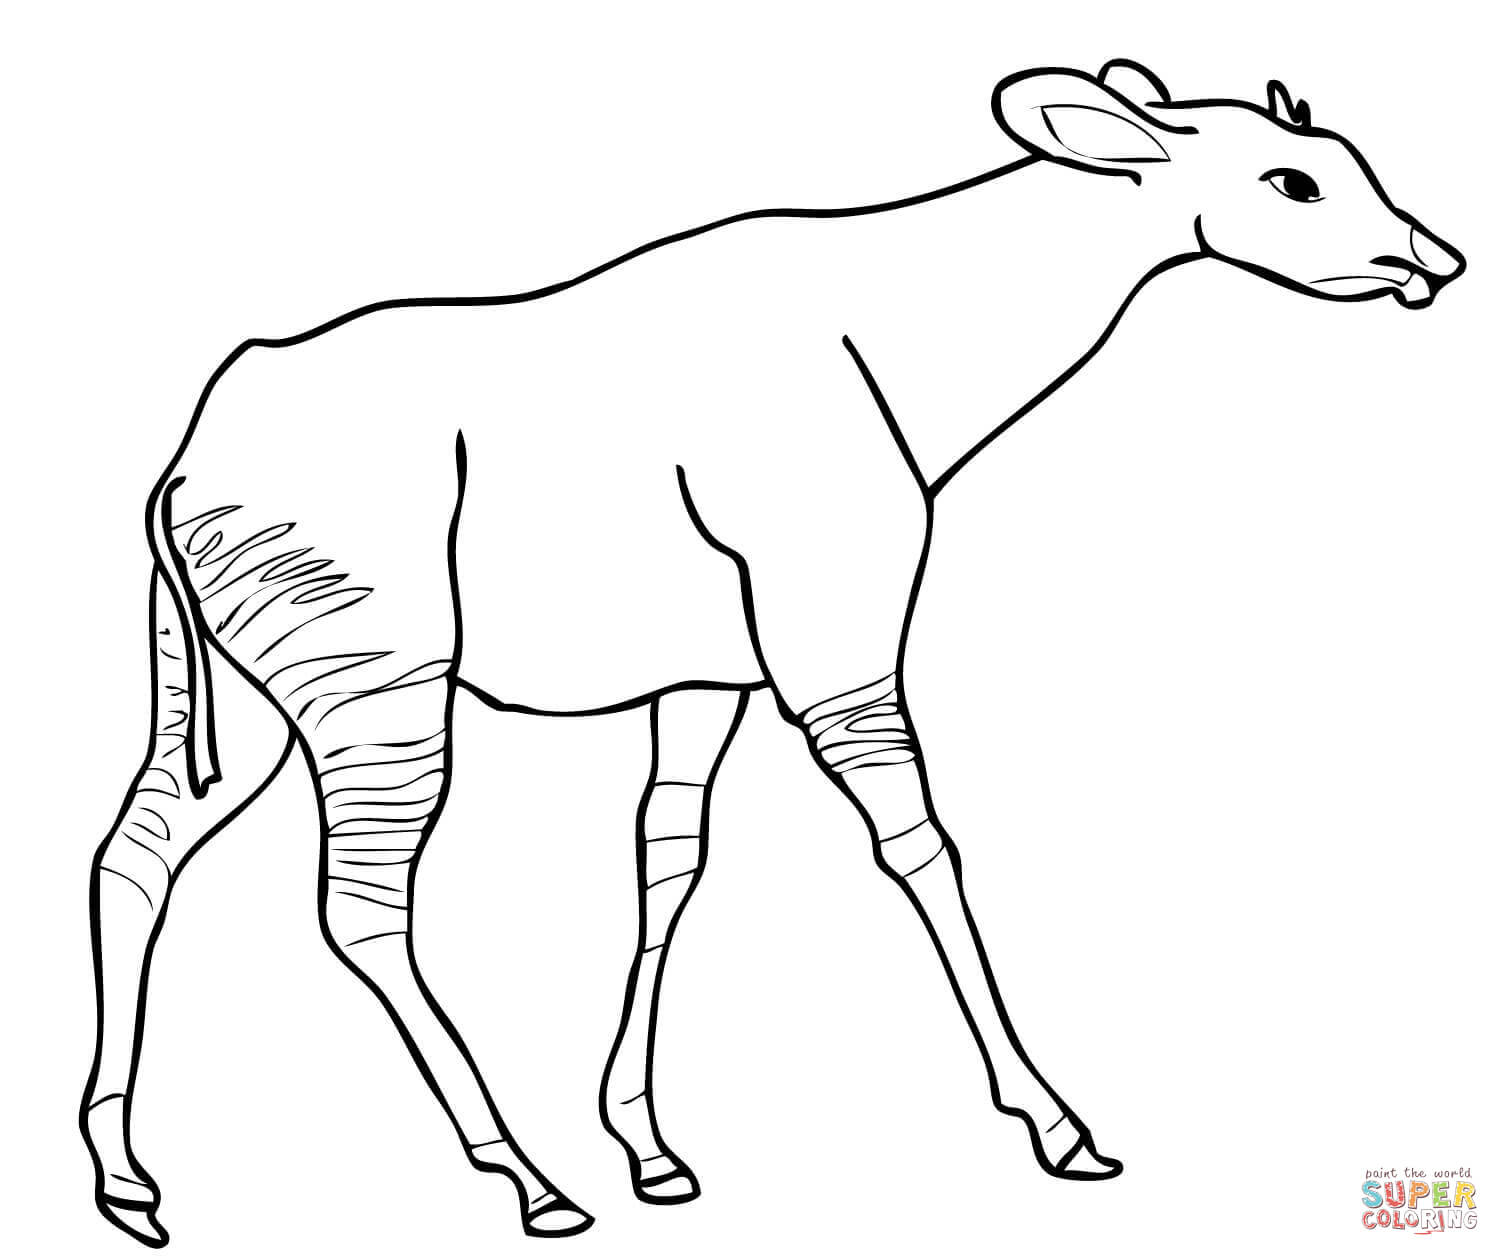 1500x1256 Okapi From Central Africa Coloring Page Free Printable Coloring